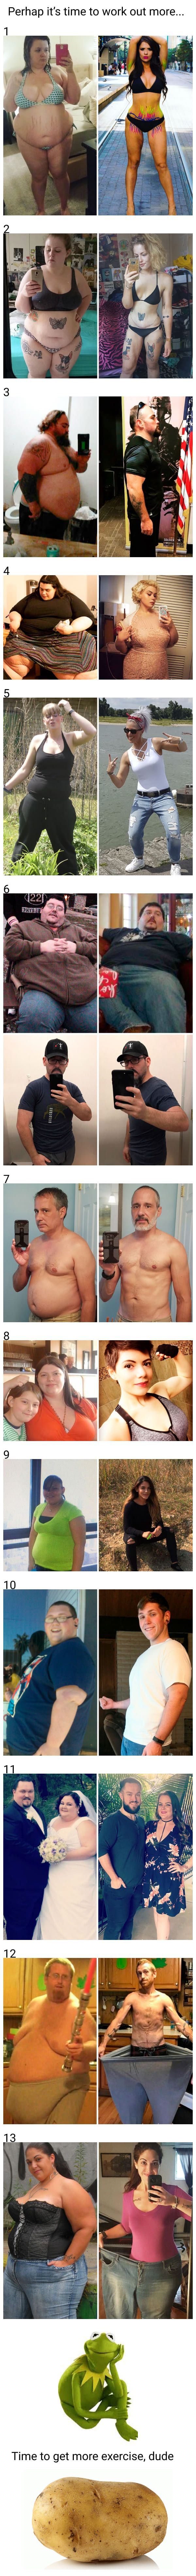 10+ Before And After Photos Of People With Dramatic Weight Loss